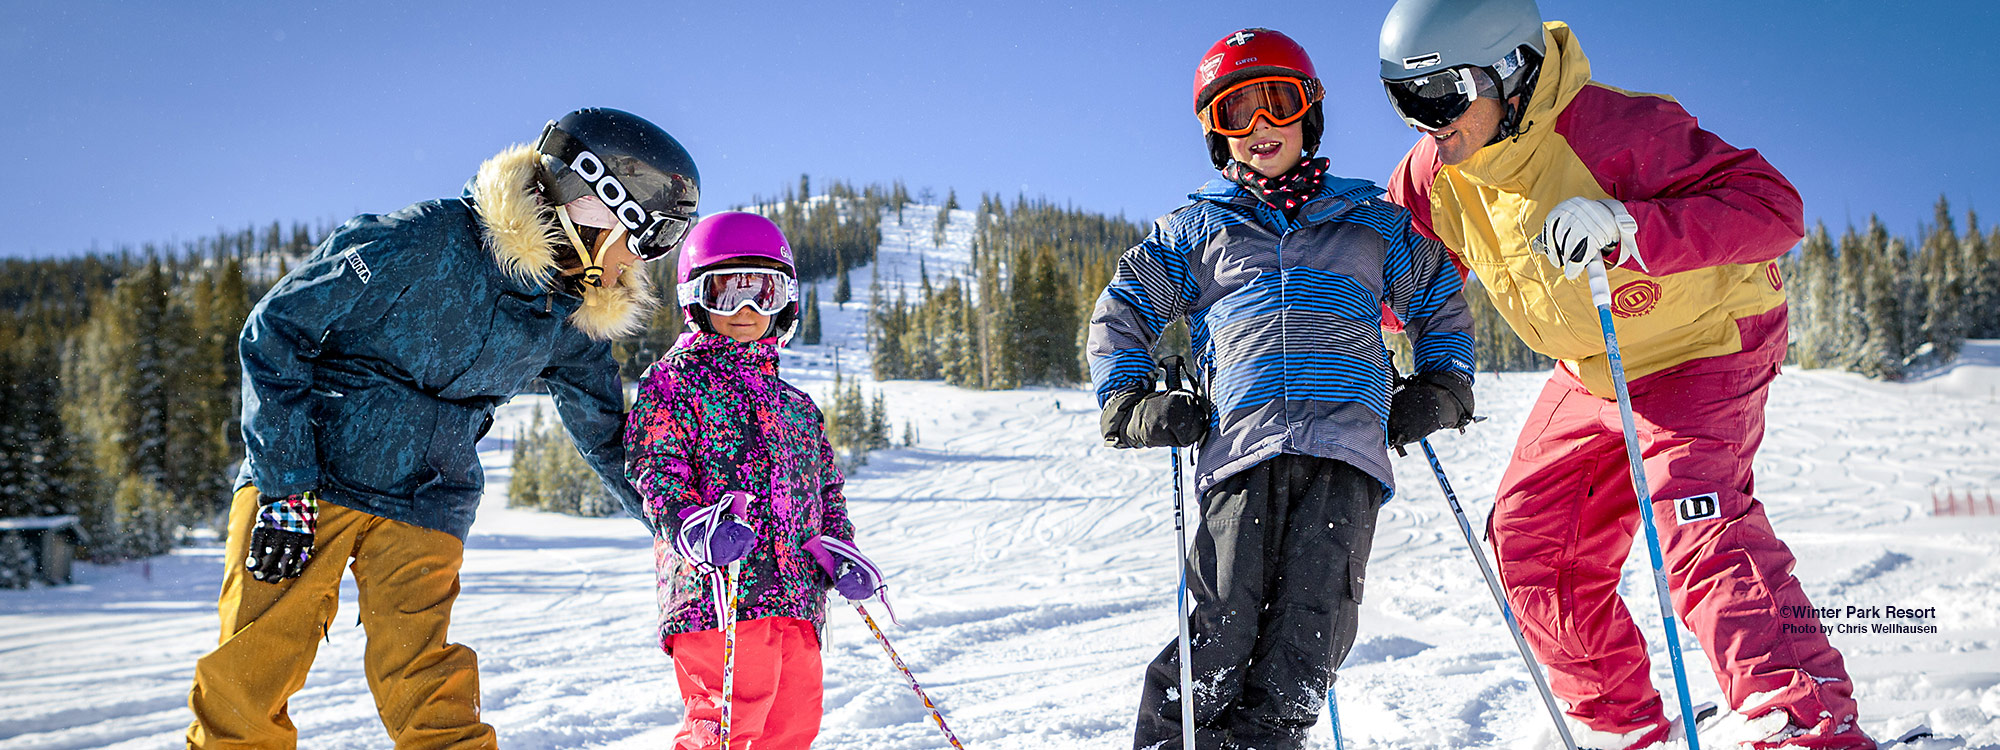 skiing for kids in winter park